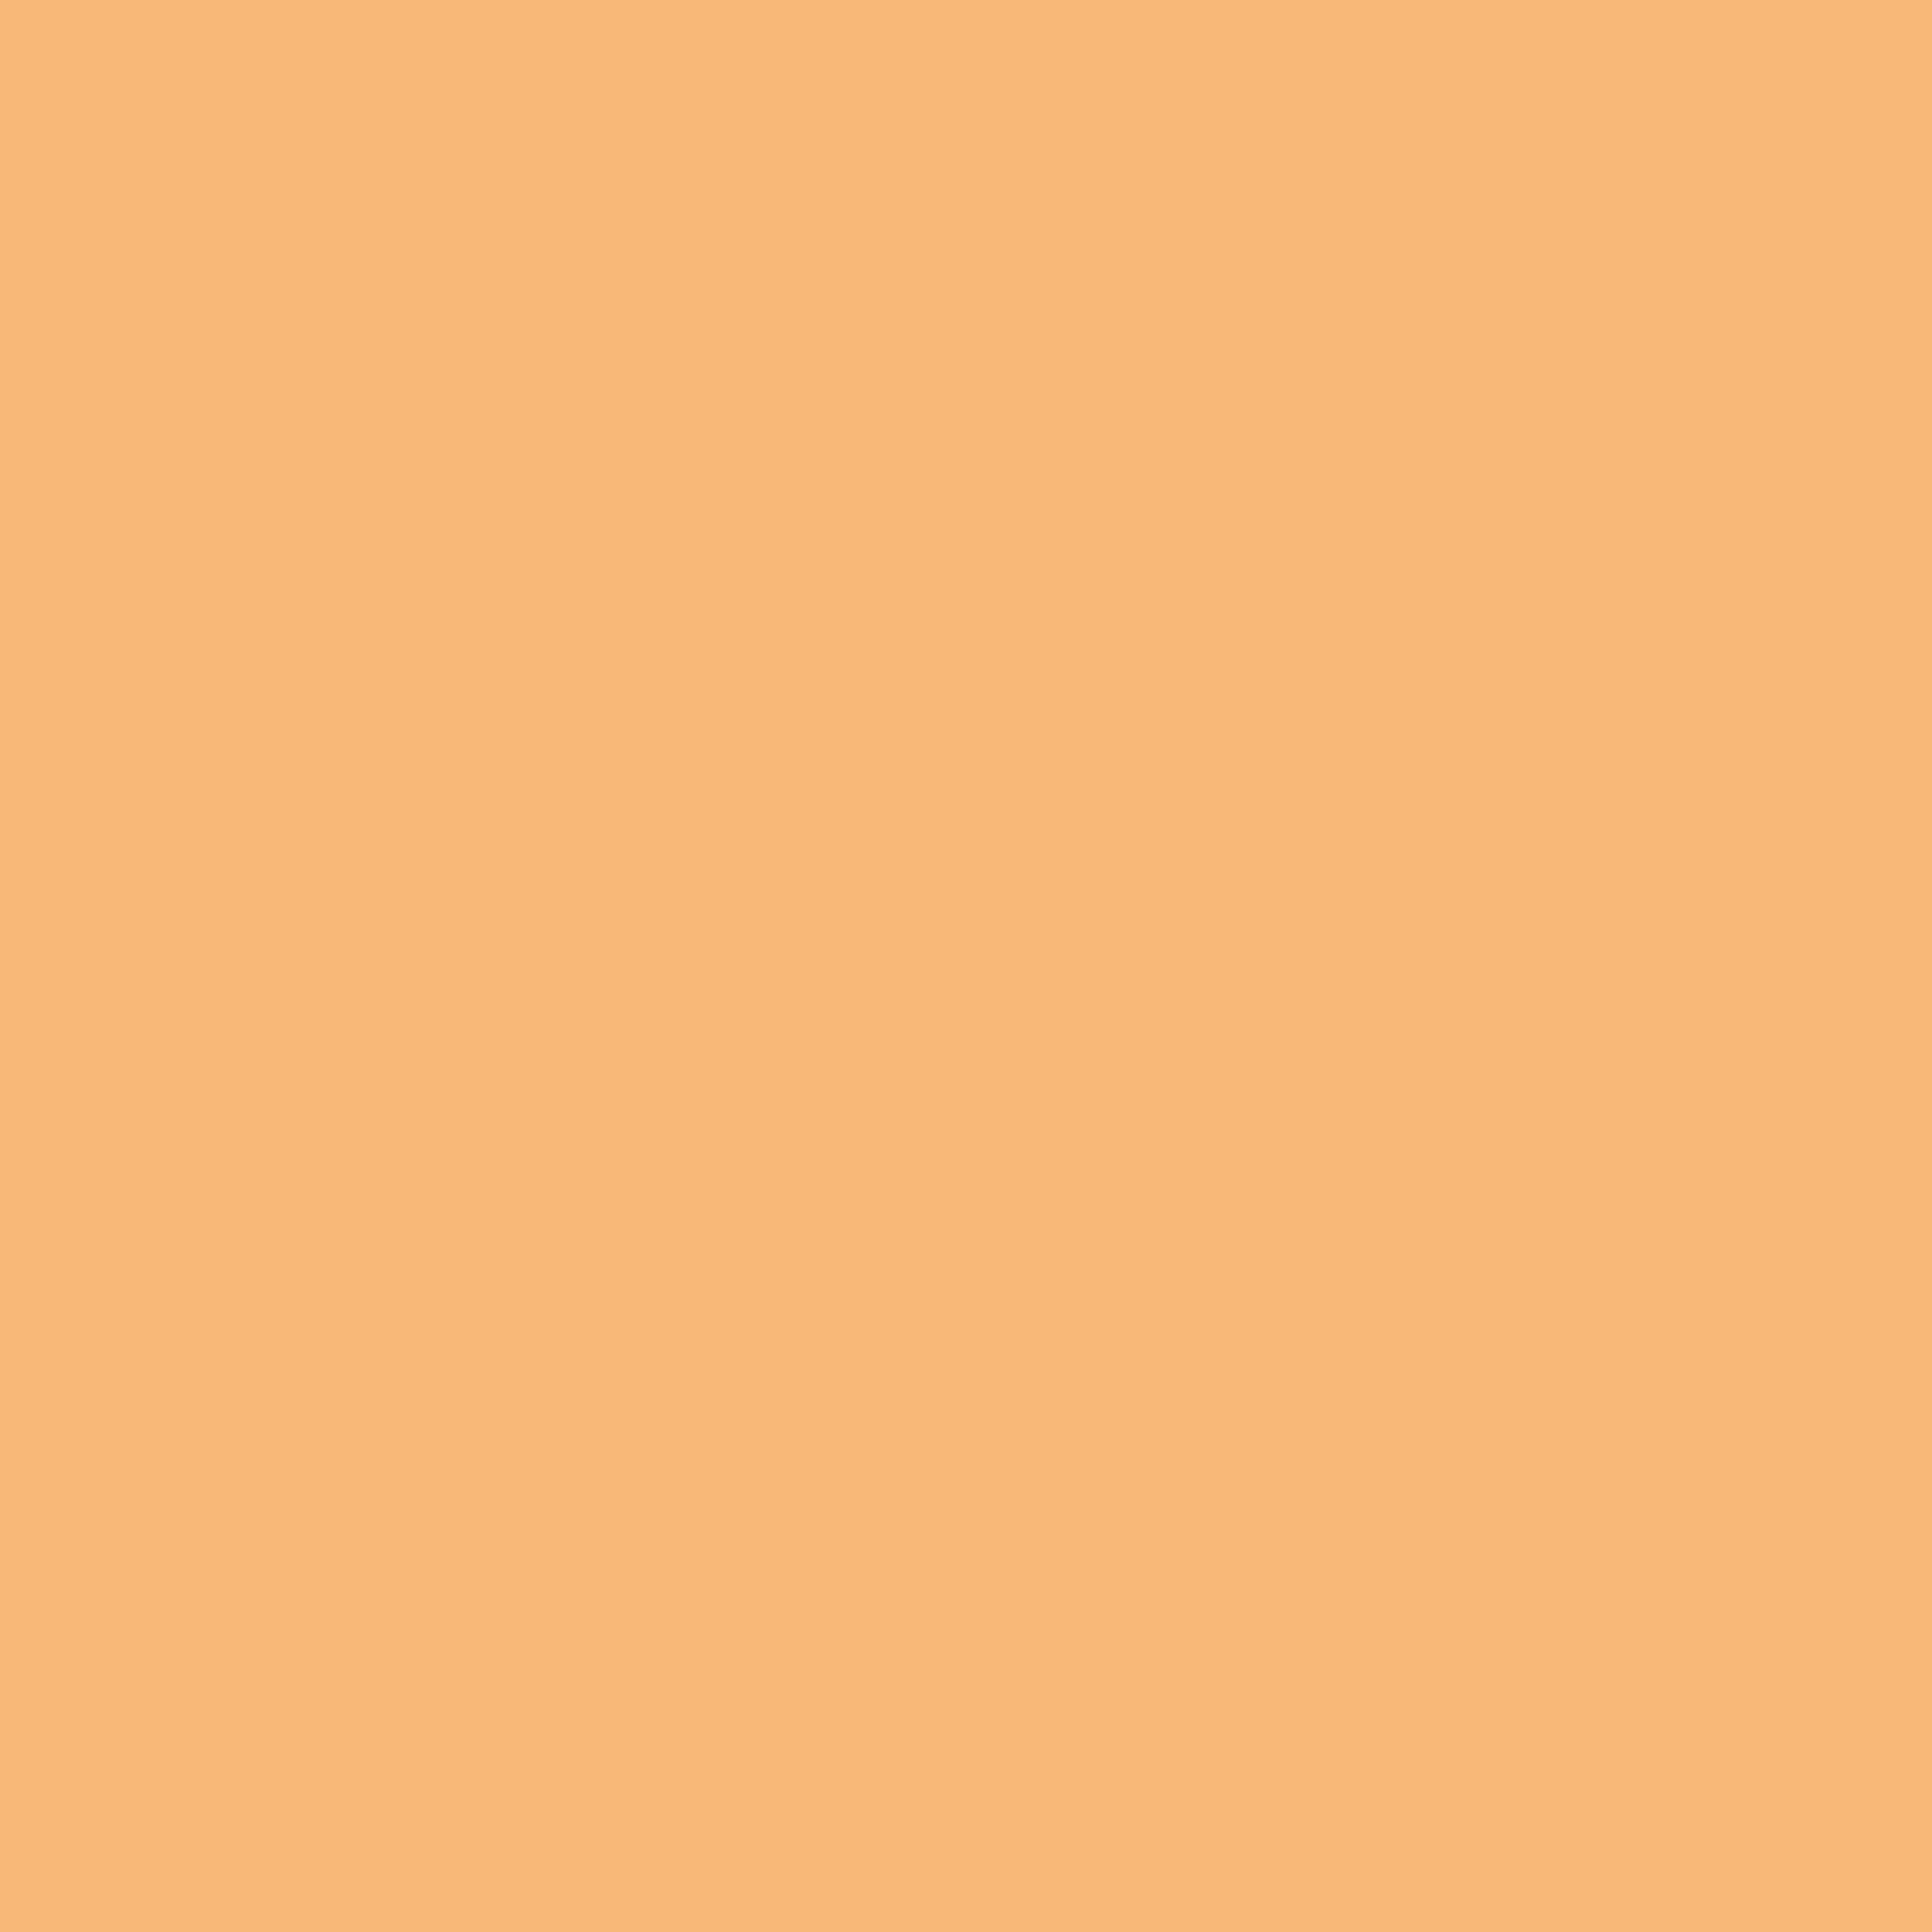 2048x2048 Mellow Apricot Solid Color Background